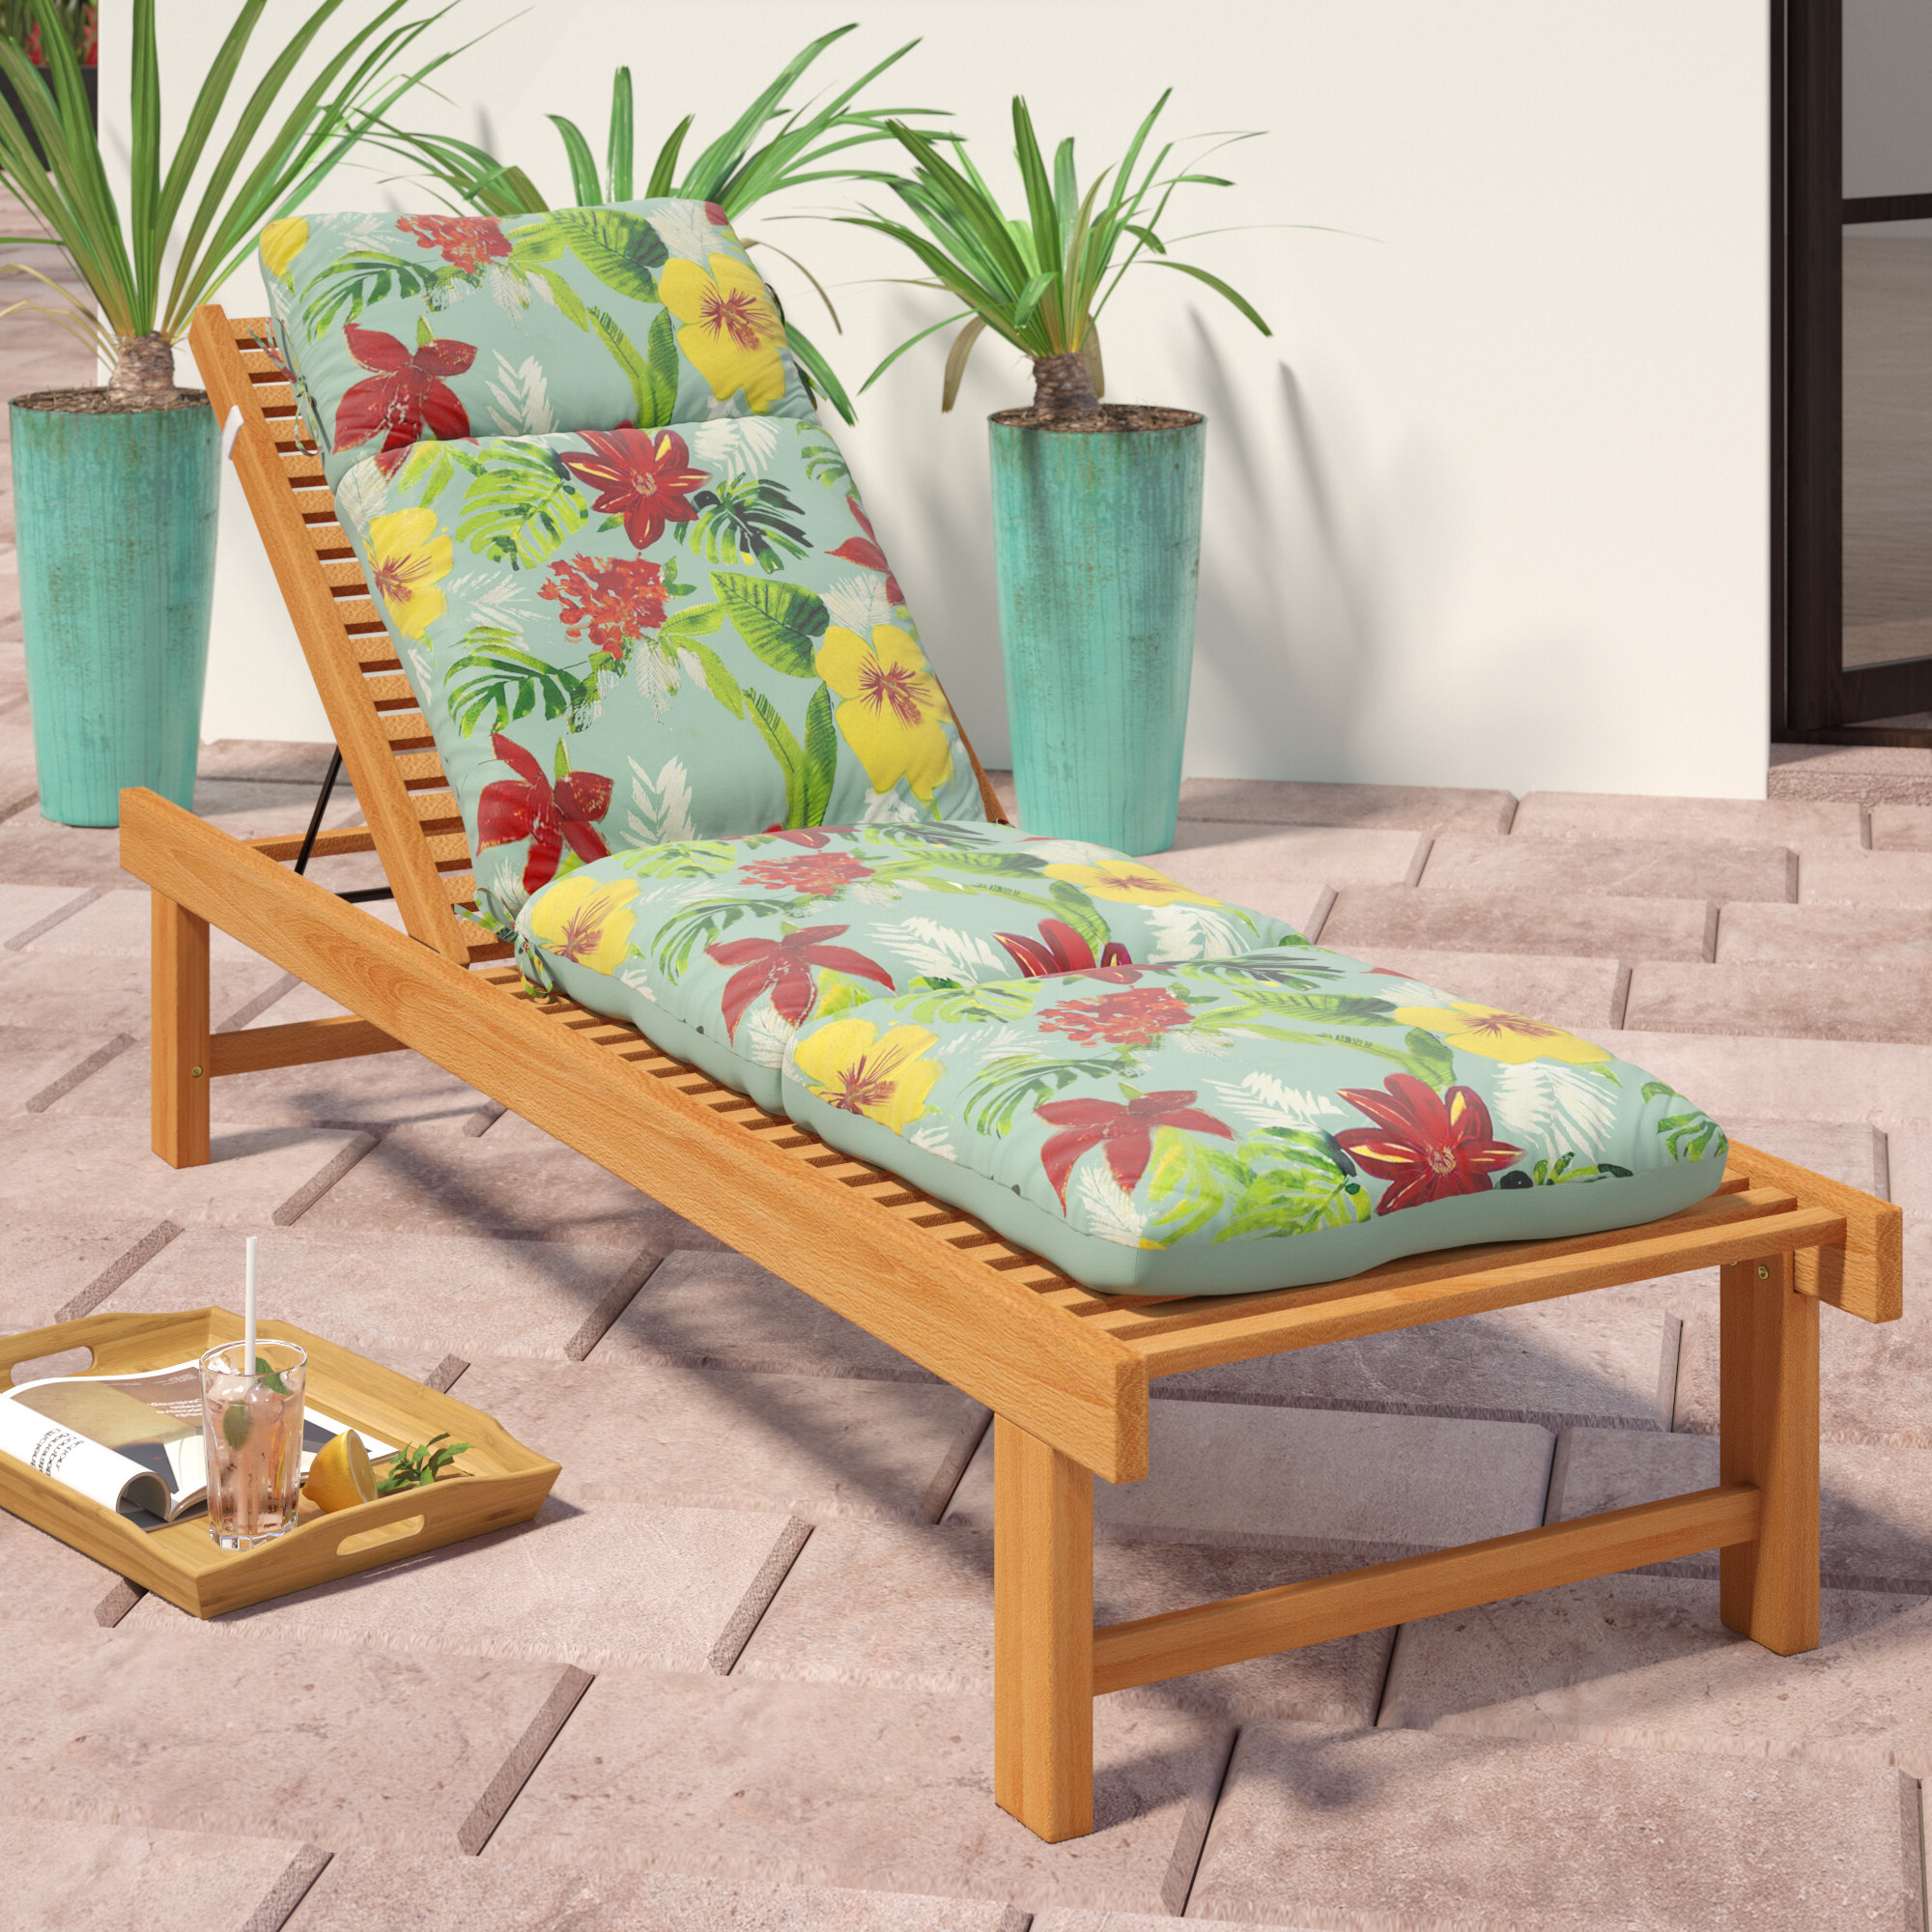 Details About Bayou Breeze Tropical Reversible Outdoor Chaise Lounge Cushion Inside Well Liked Jamaica Outdoor Wicker Chaise Lounges With Cushion (View 23 of 25)